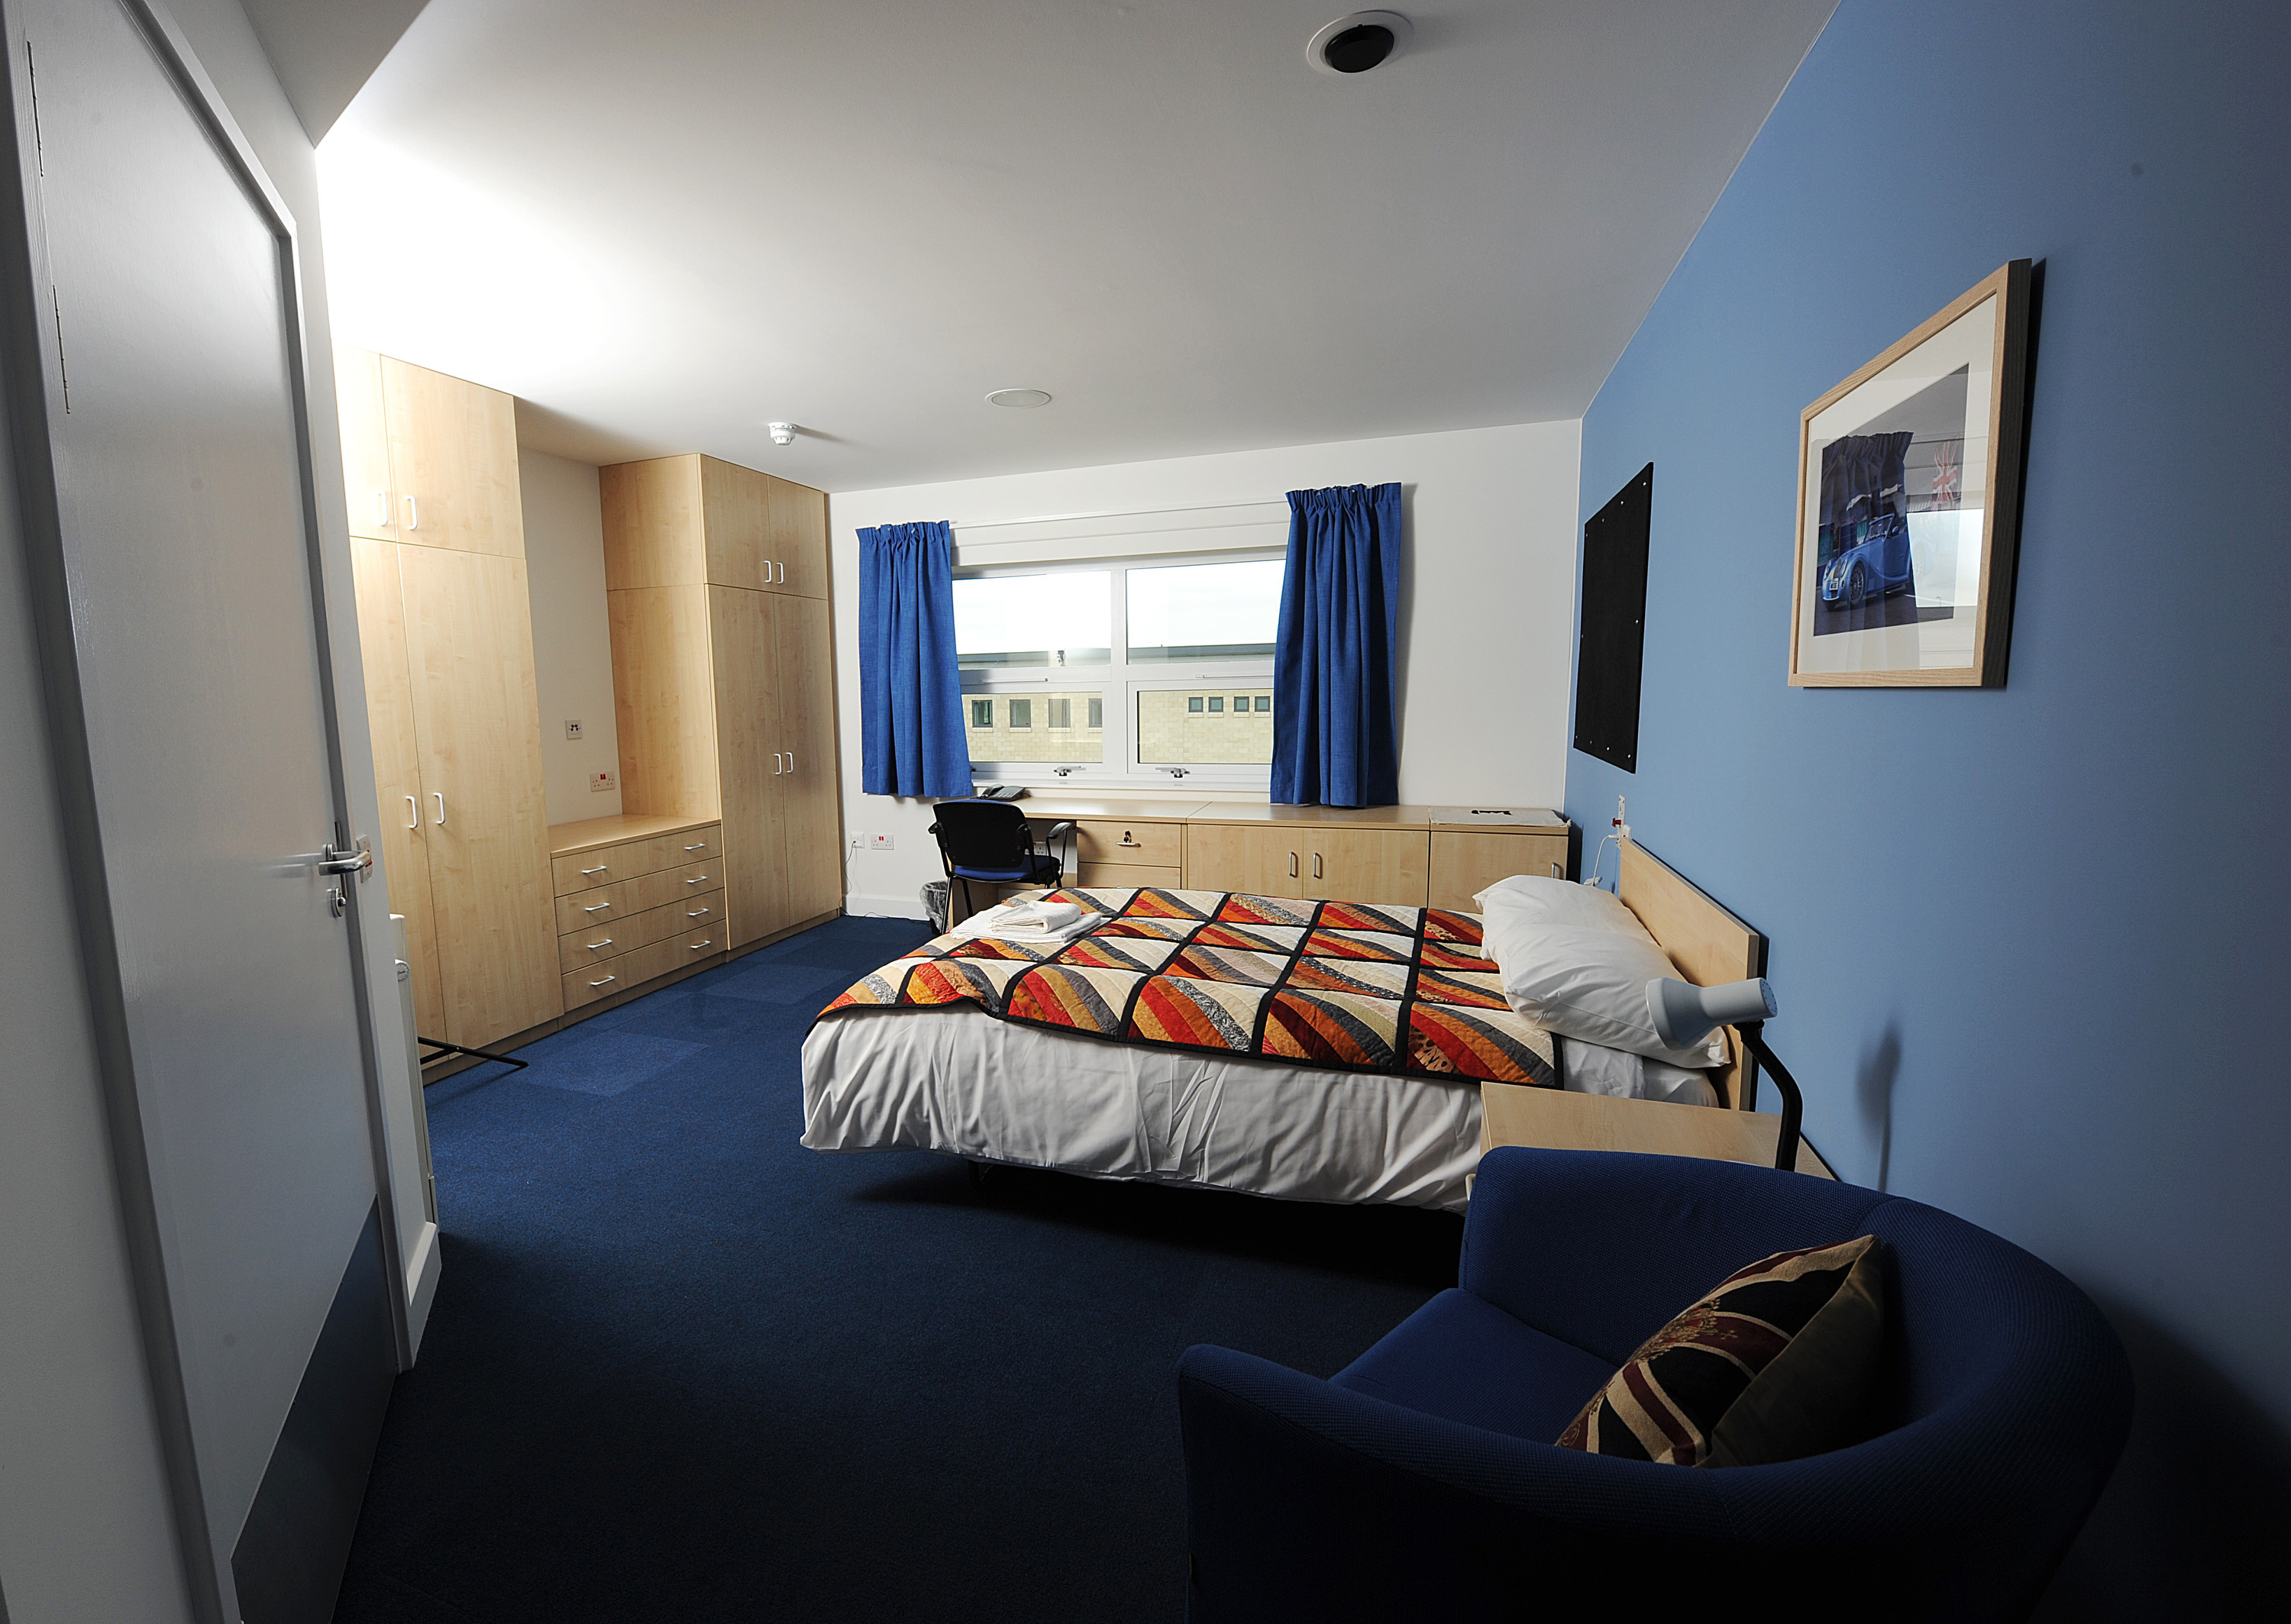 Residential Rooms To Rent Near Hamburg Airport